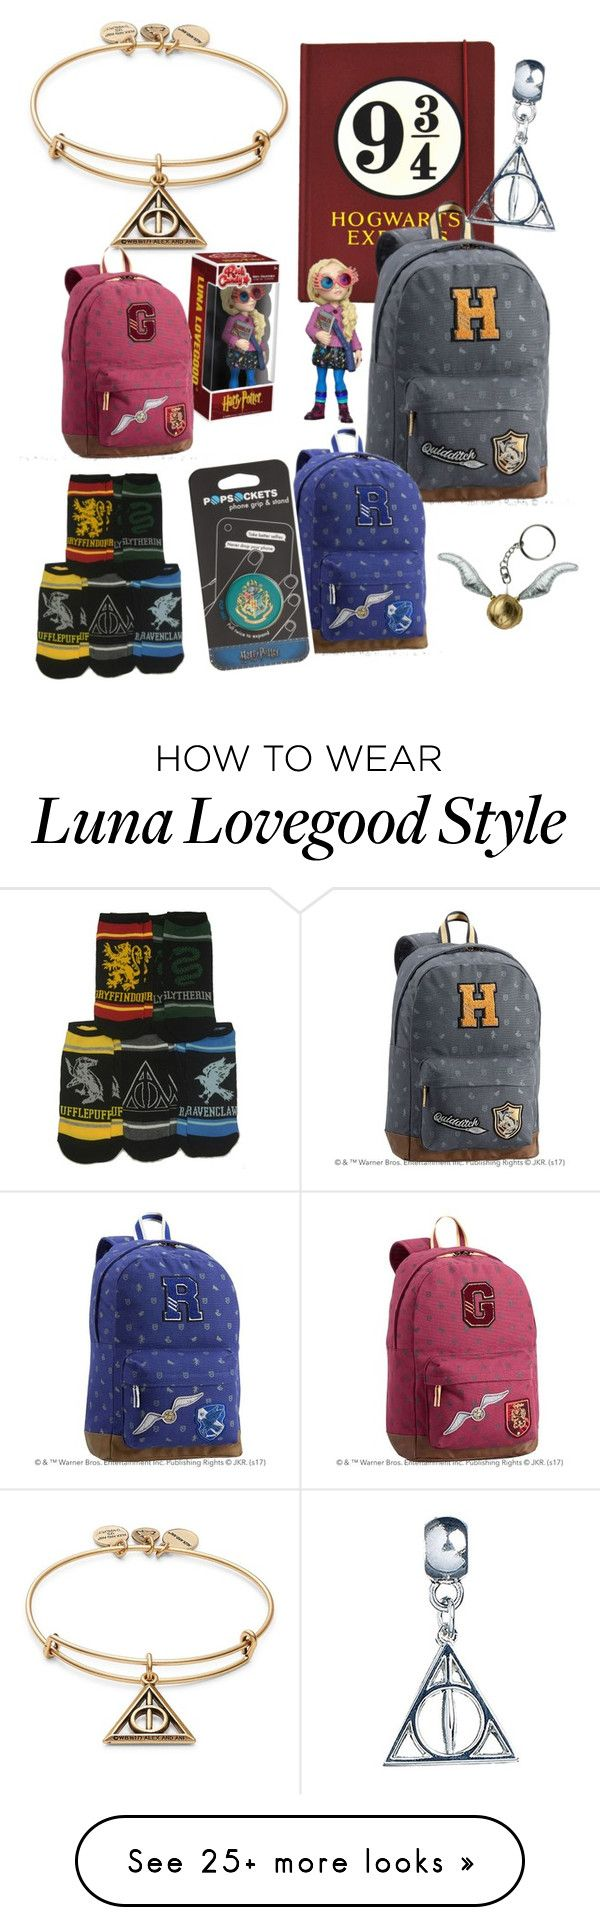 """""""#PolyPresents: Last-Minute Gifts Harry Potter ⚡️"""" by fashion0203 on Polyvore featuring Alex and Ani, PBteen, Funko, PopSockets, contestentry and polyPresents"""